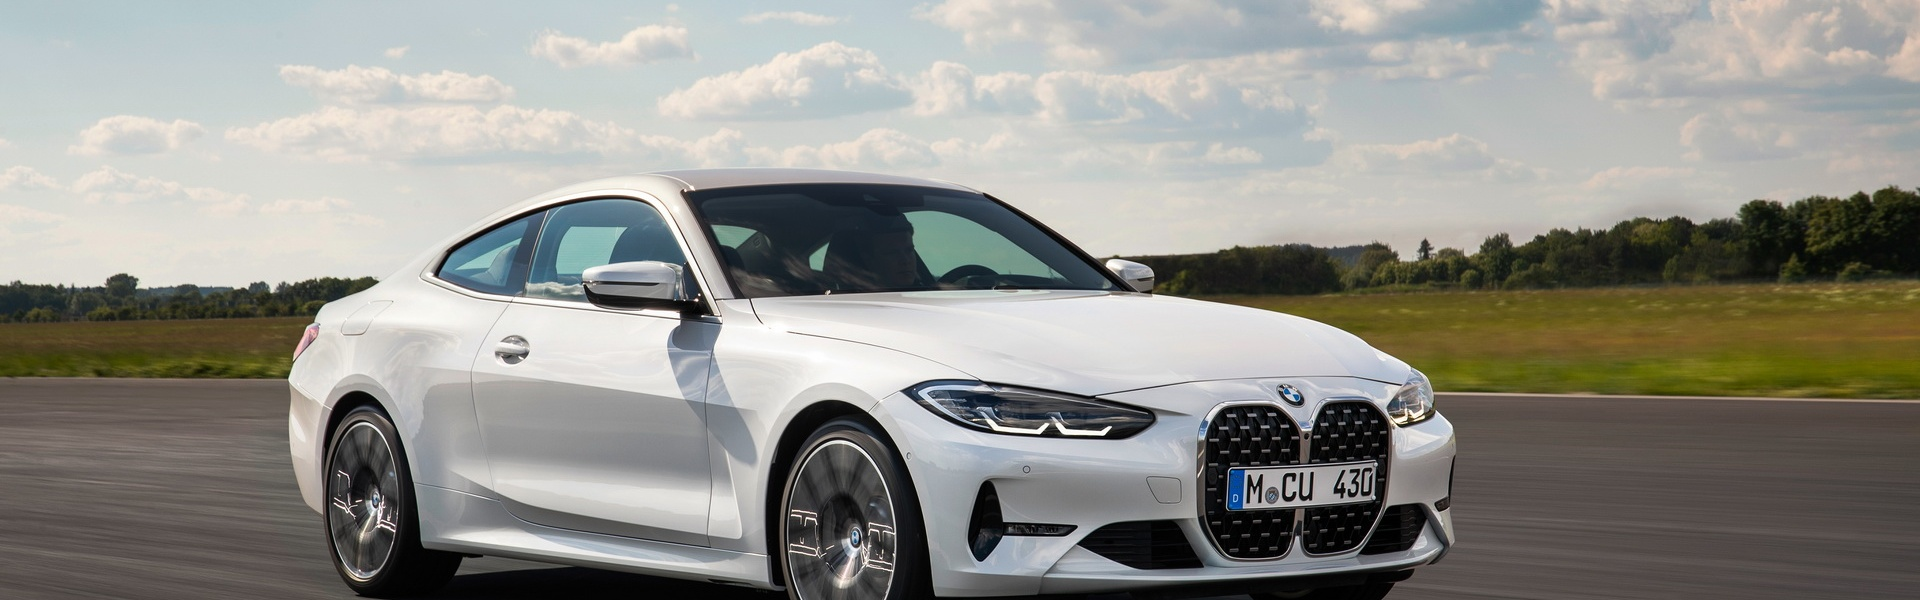 2021-BMW-4-Series-Coupe-84.jpg